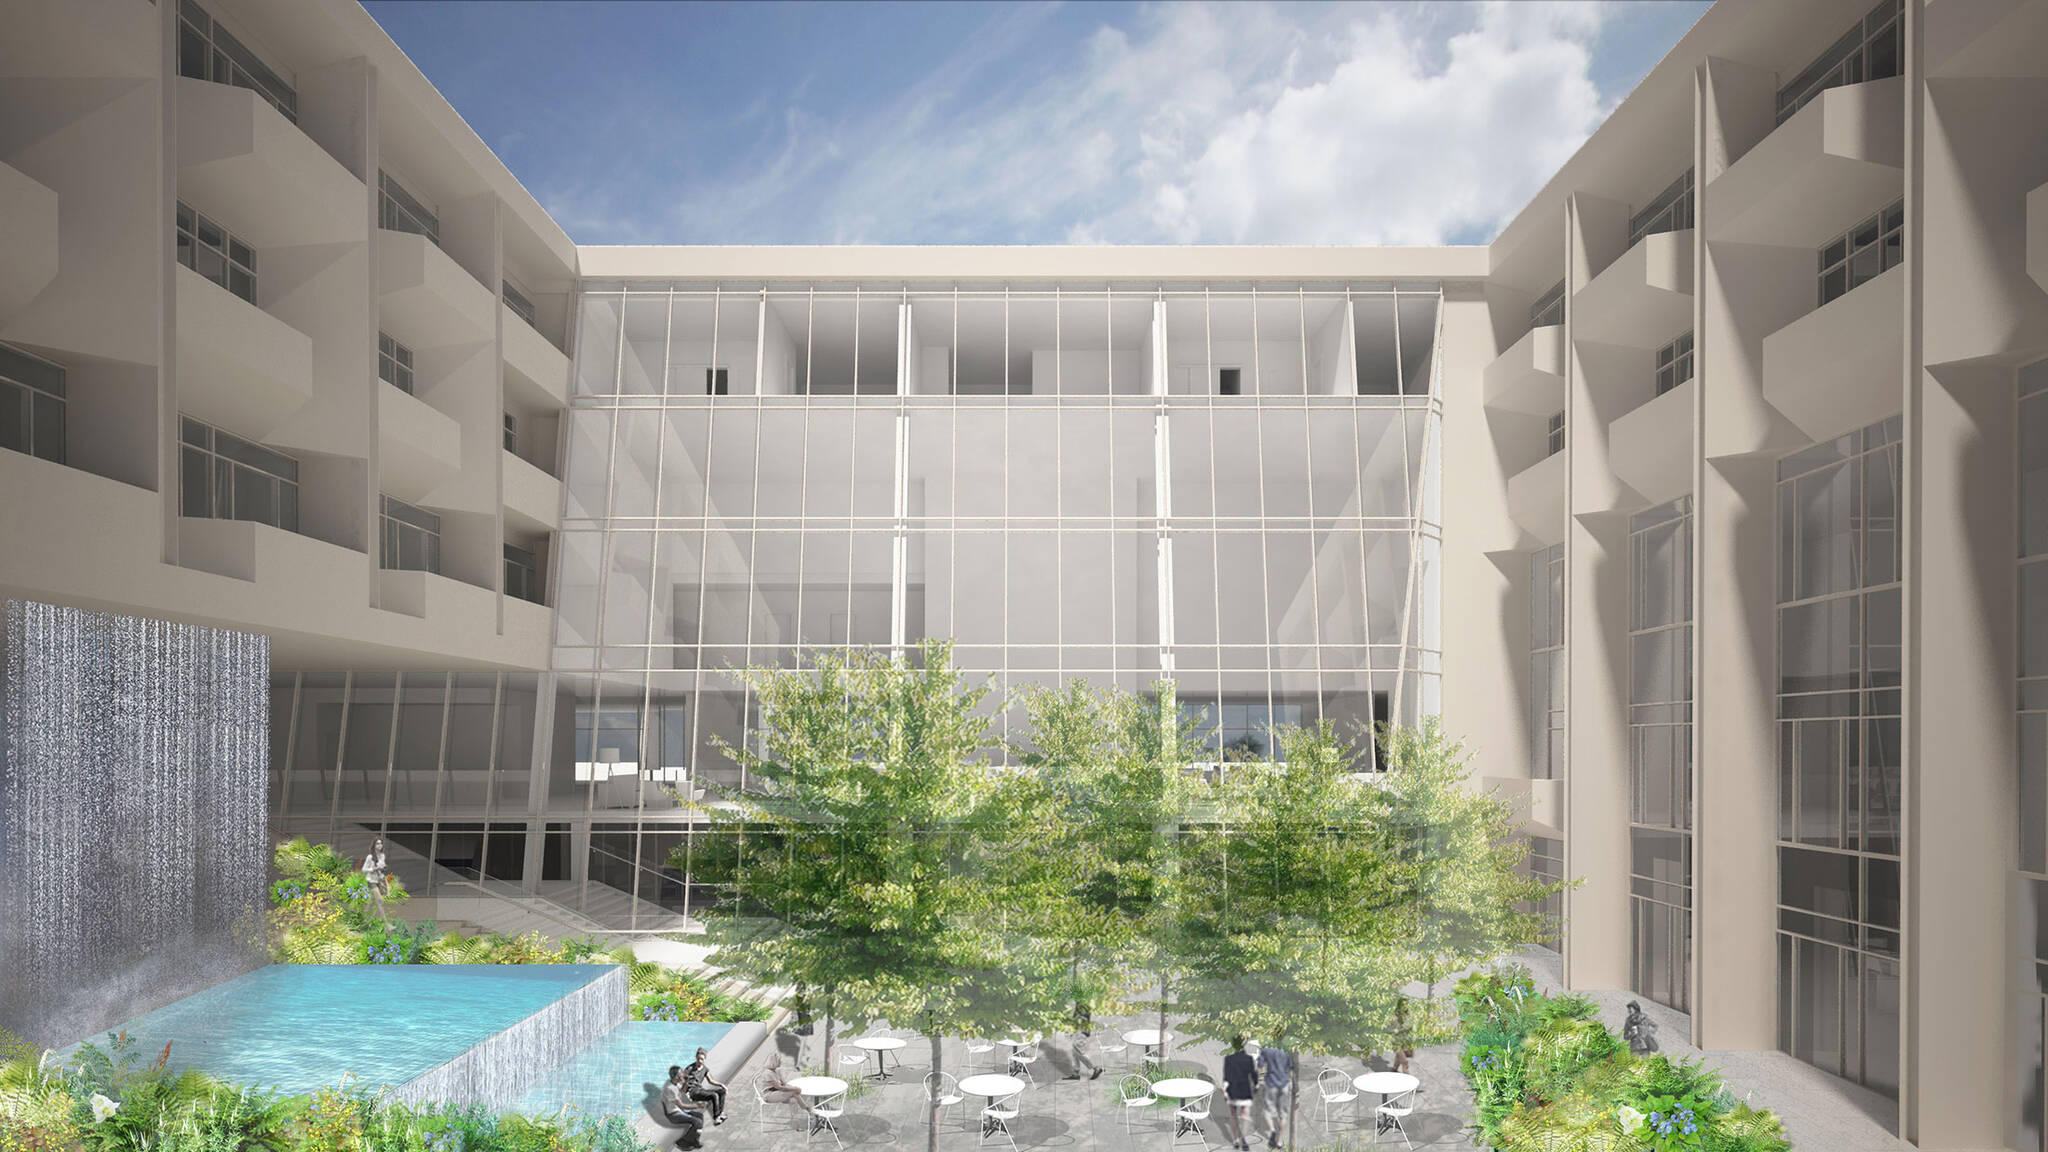 Courtyard of the Jericho Plaza Hotel project in Jericho, New York designed by the architecture studio Danny Forster & Architecture